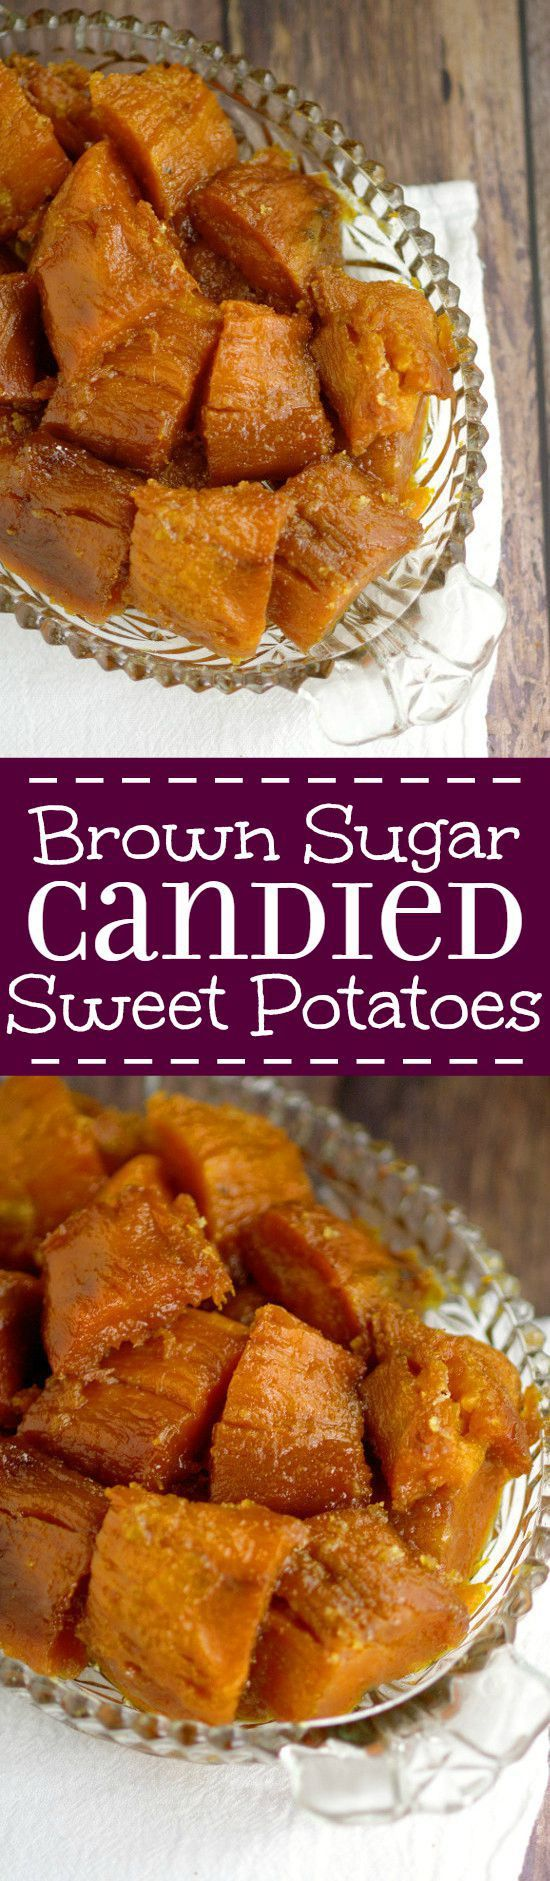 Classic Candied Sweet Potatoes baked in butter and sweet brown sugar ...